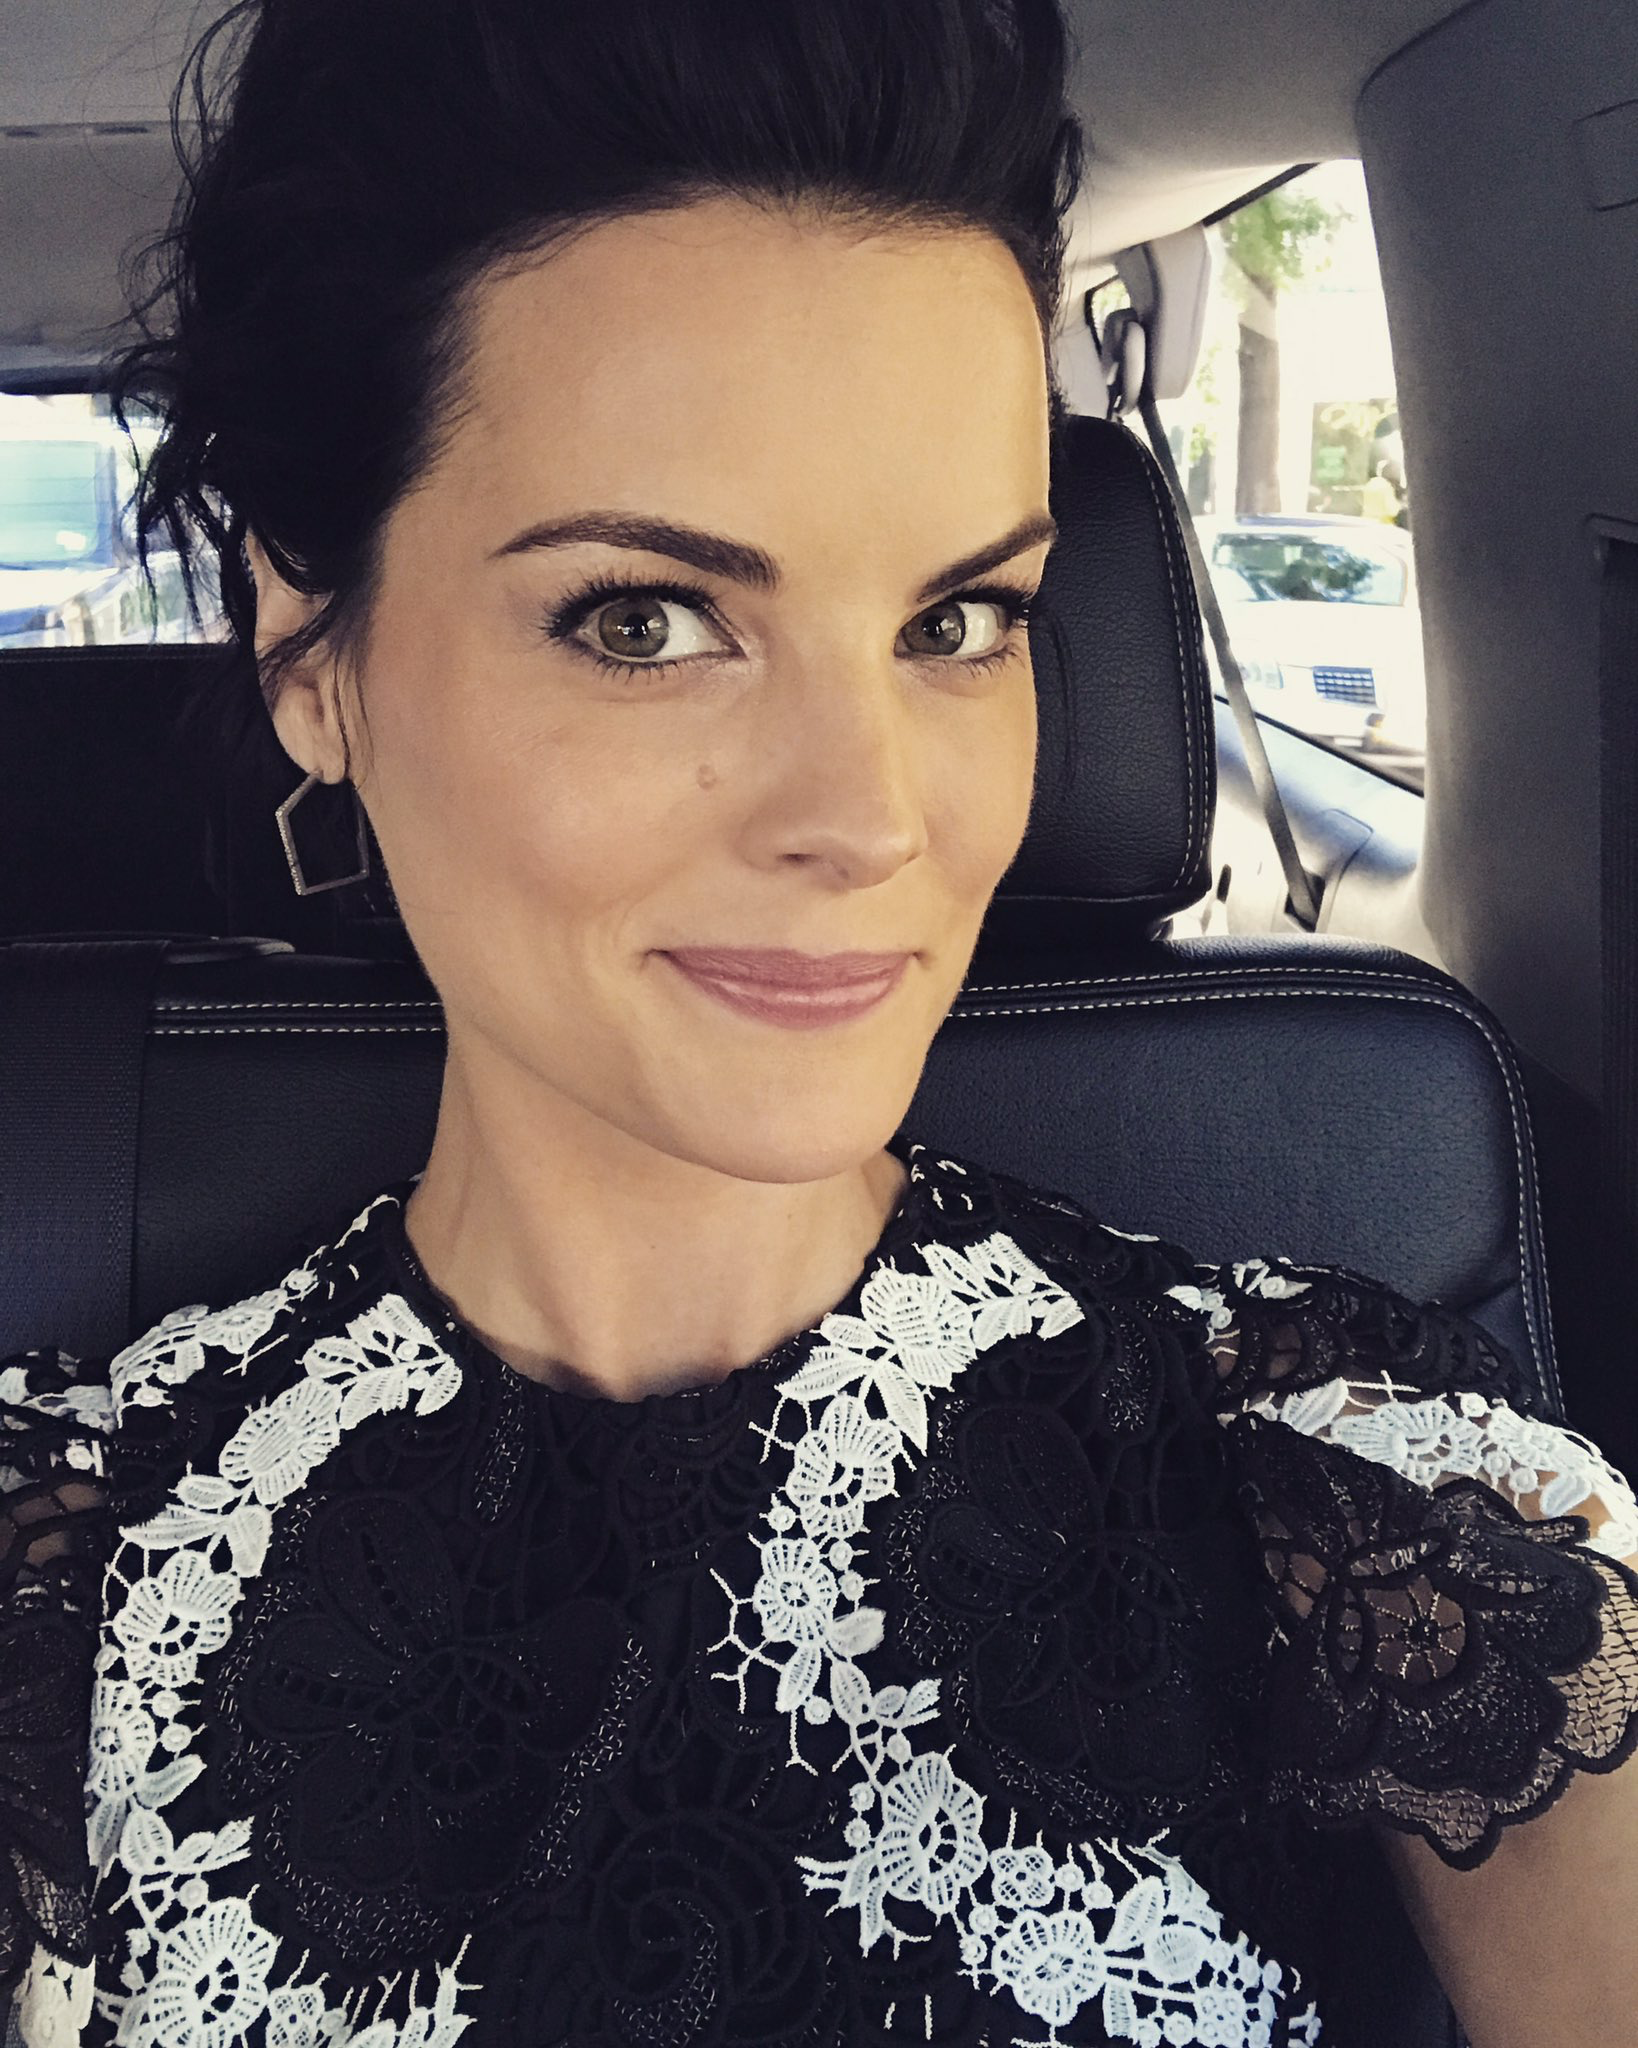 Sexy Selfie Jaimie Alexander naked photo 2017